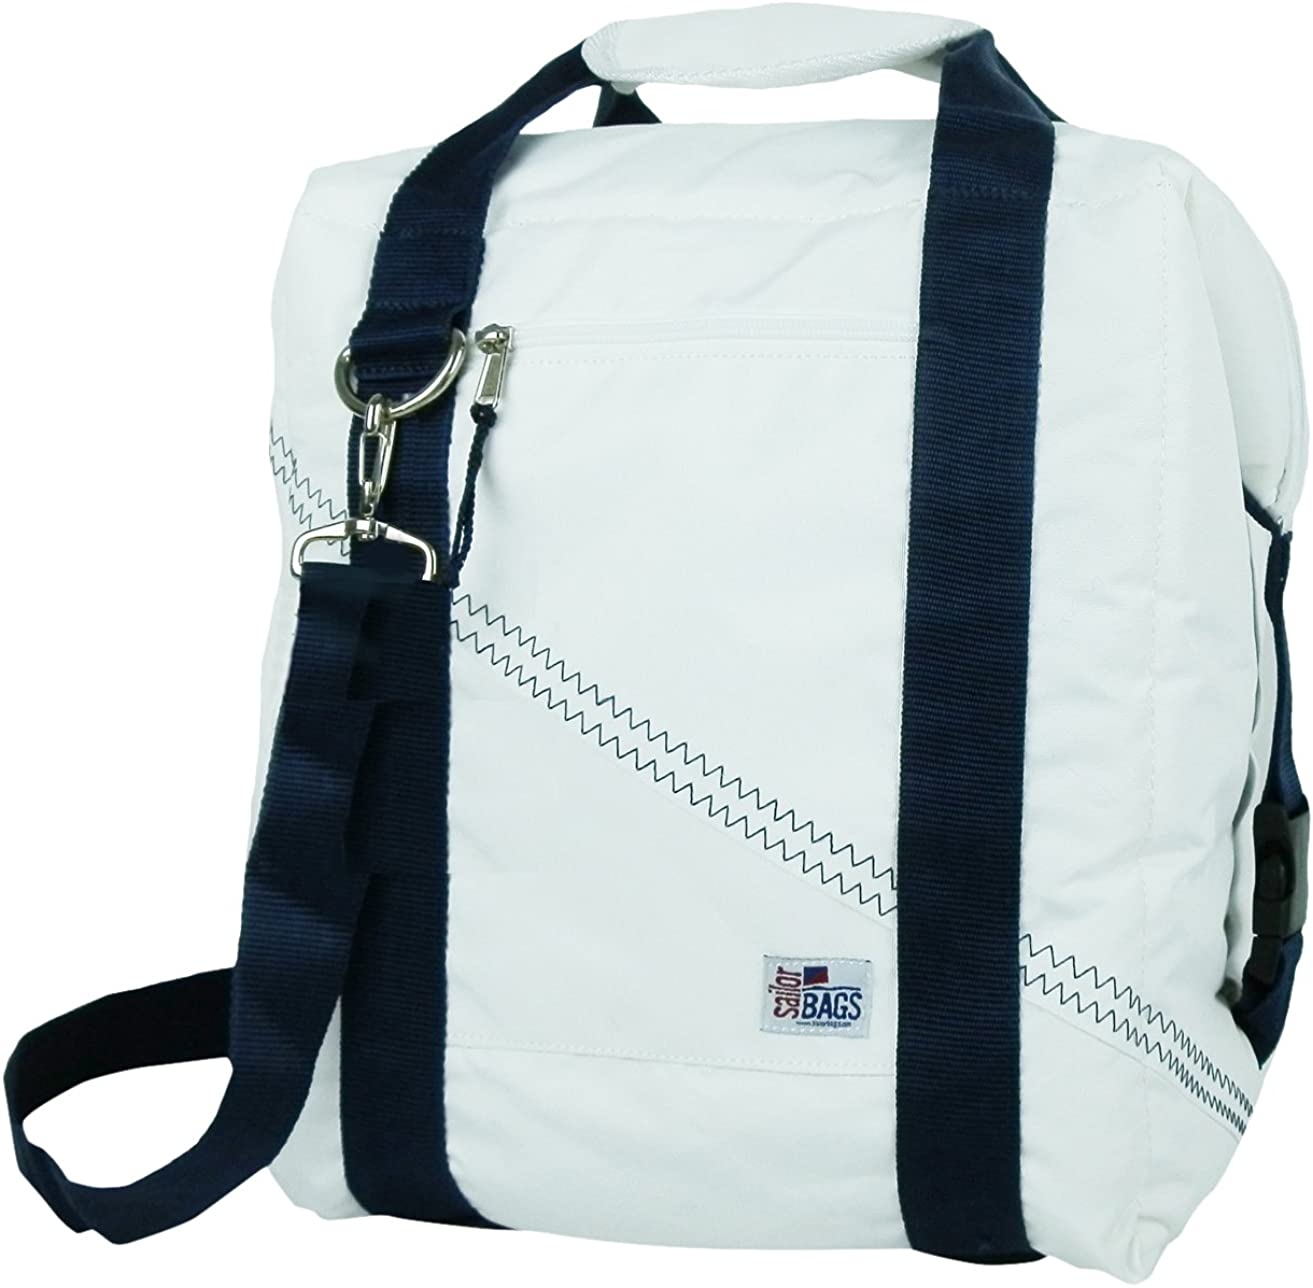 SailorBags Soft Cooler Bag with Blue Straps (24 Pack)